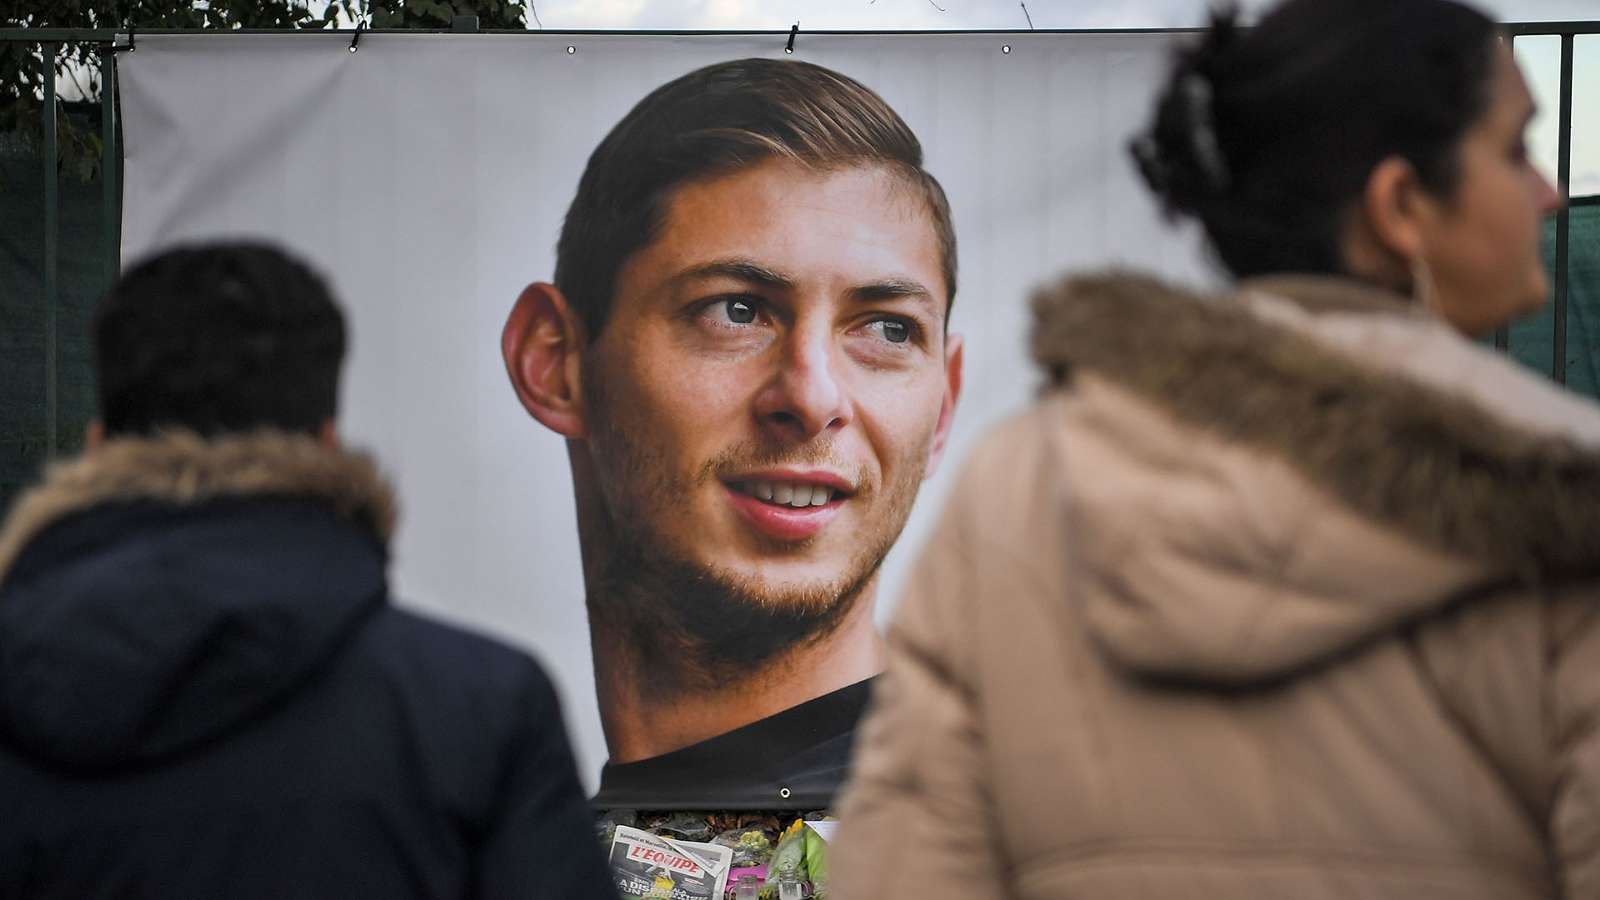 Sala Missing Plane : UK Crash Investigators Launched An Underwater Operation To Recover Body From Wreckage 1